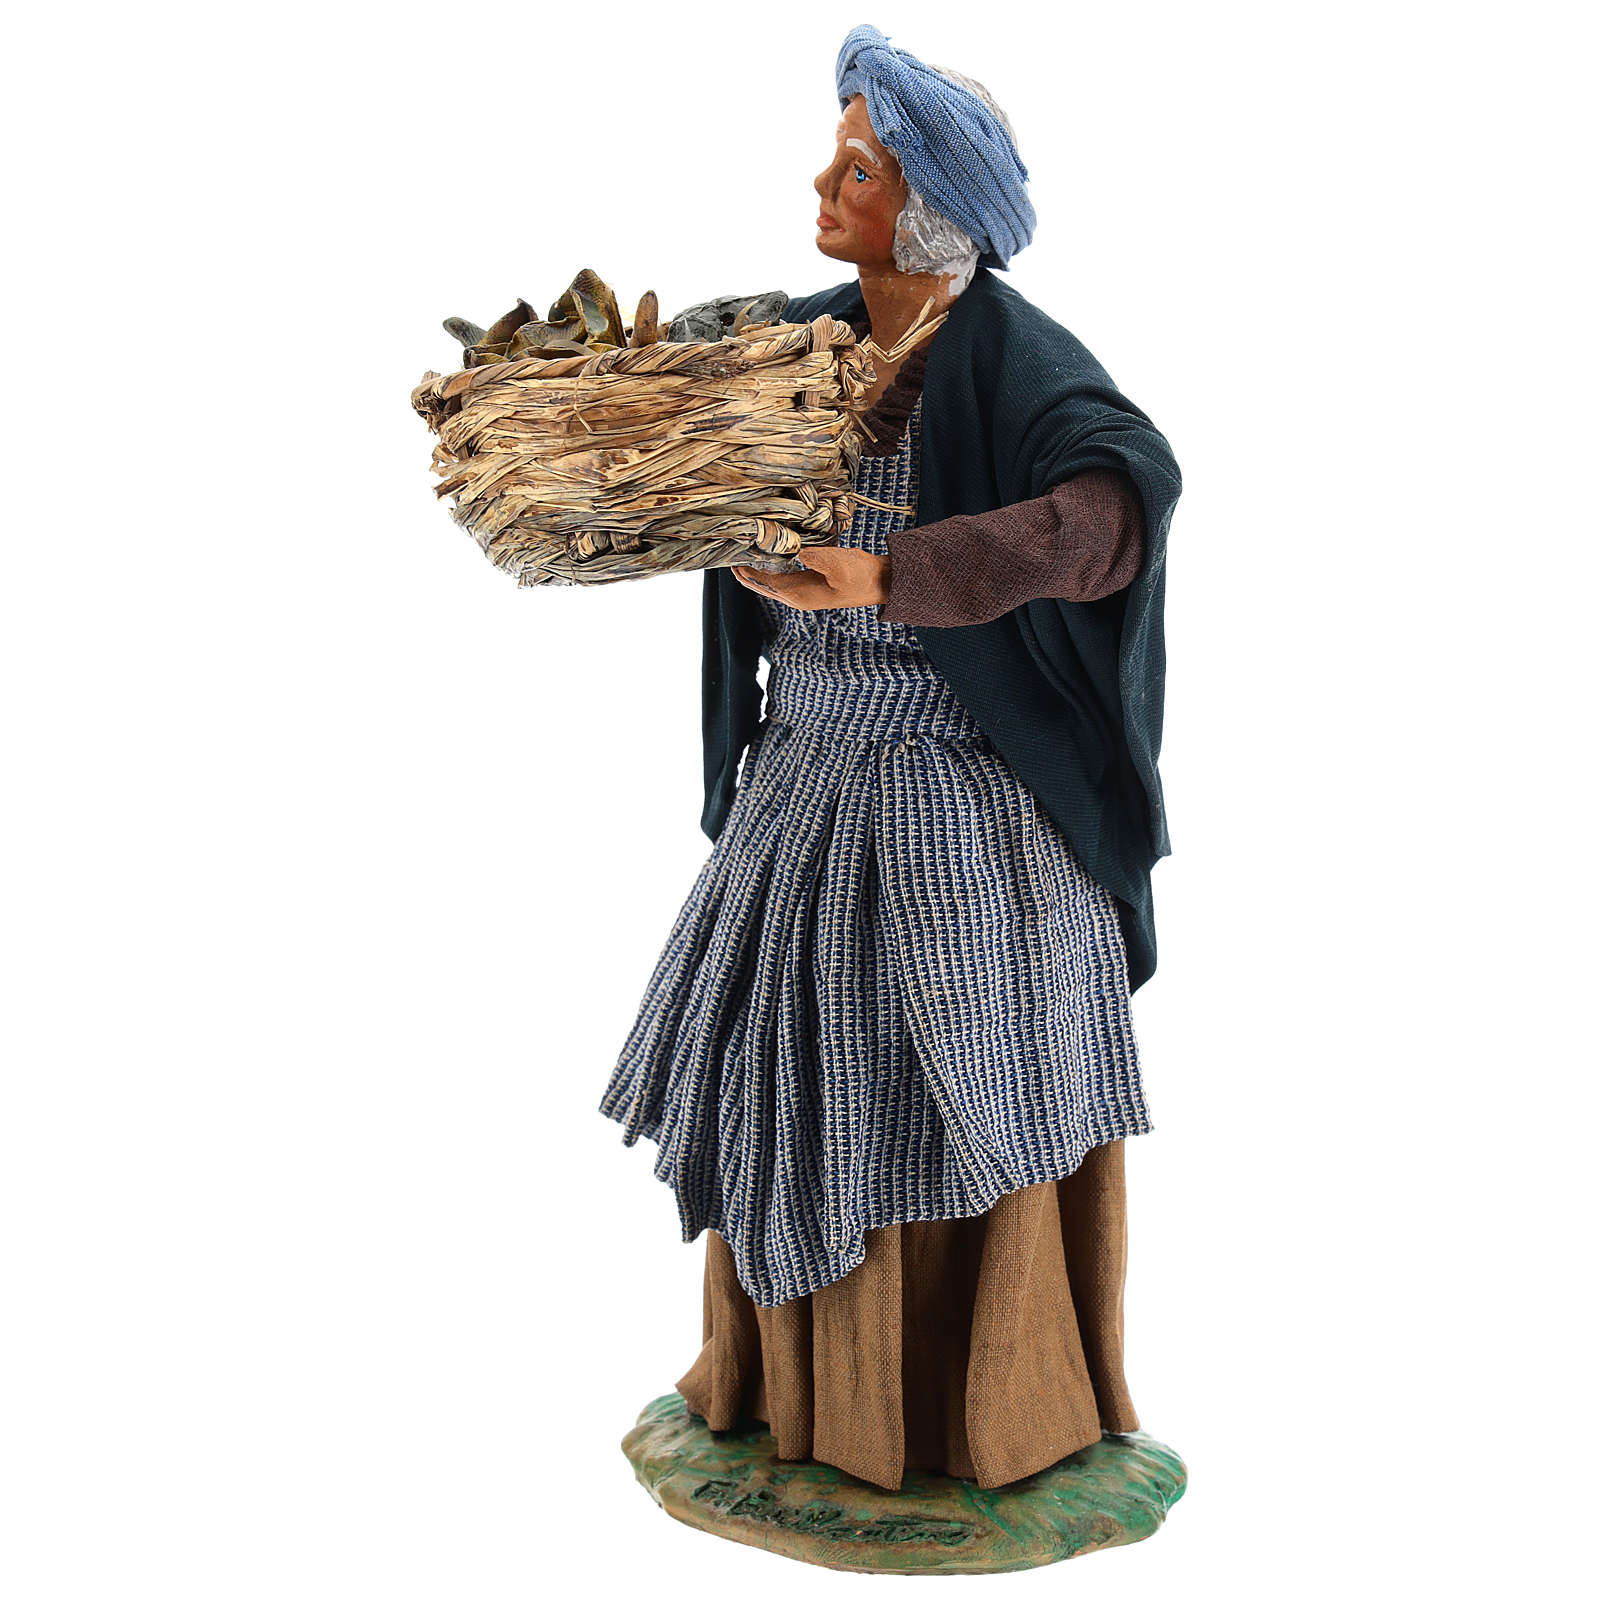 Old lady with fruit basket and straw, Neapolitan nativity figurine 24cm 4